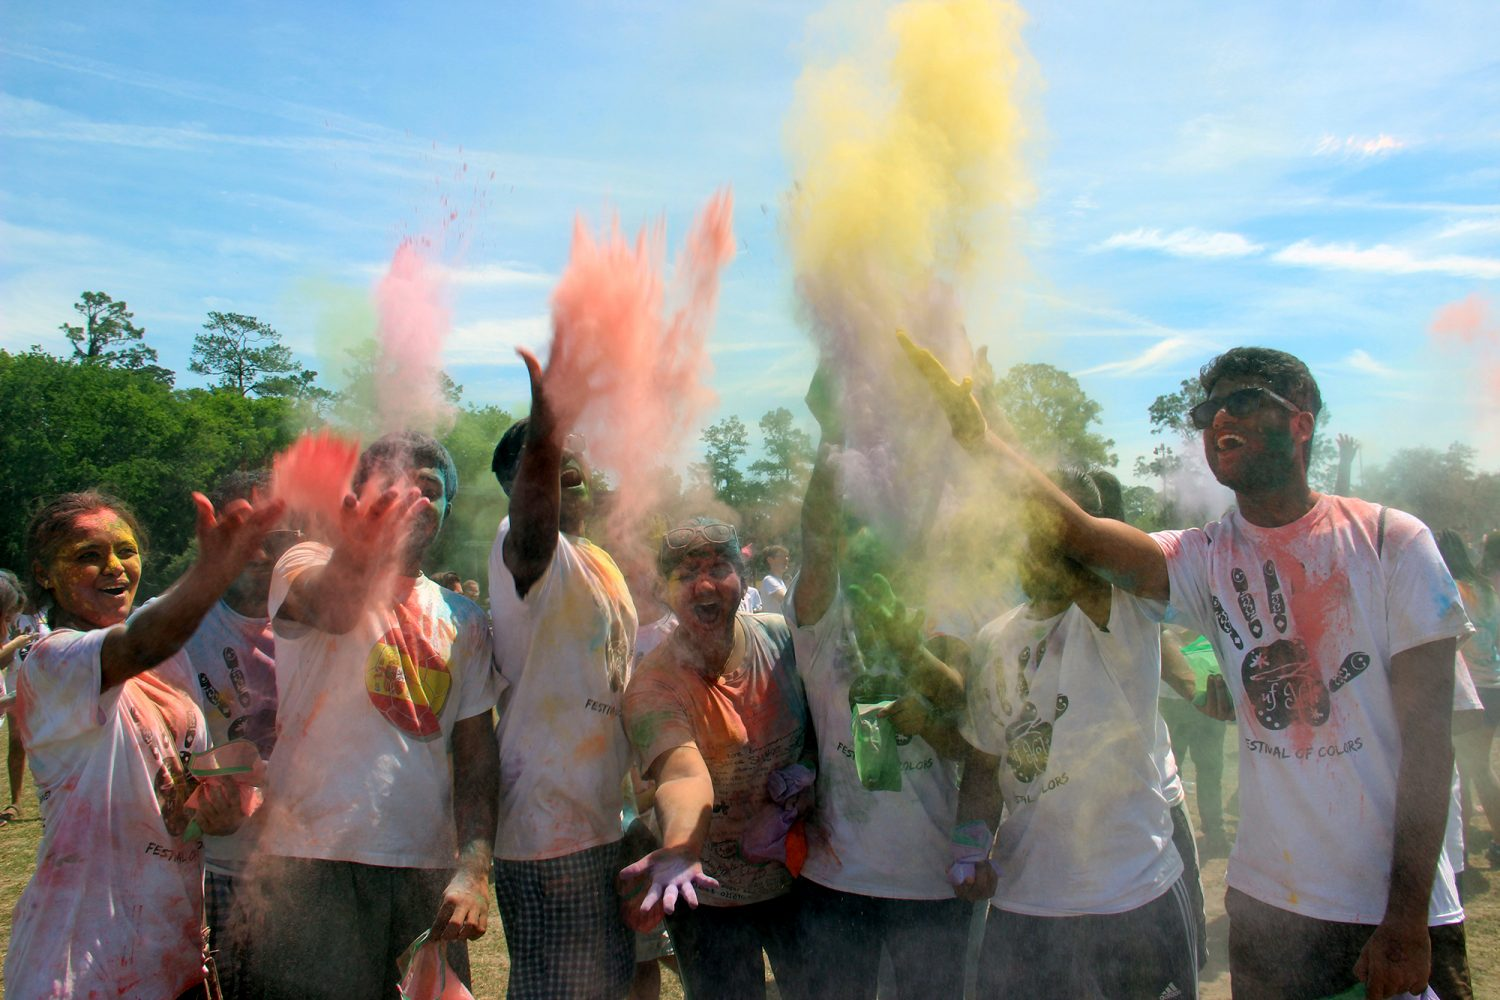 Holi News: In Photos: Holi Festival Brings Color To UF Campus